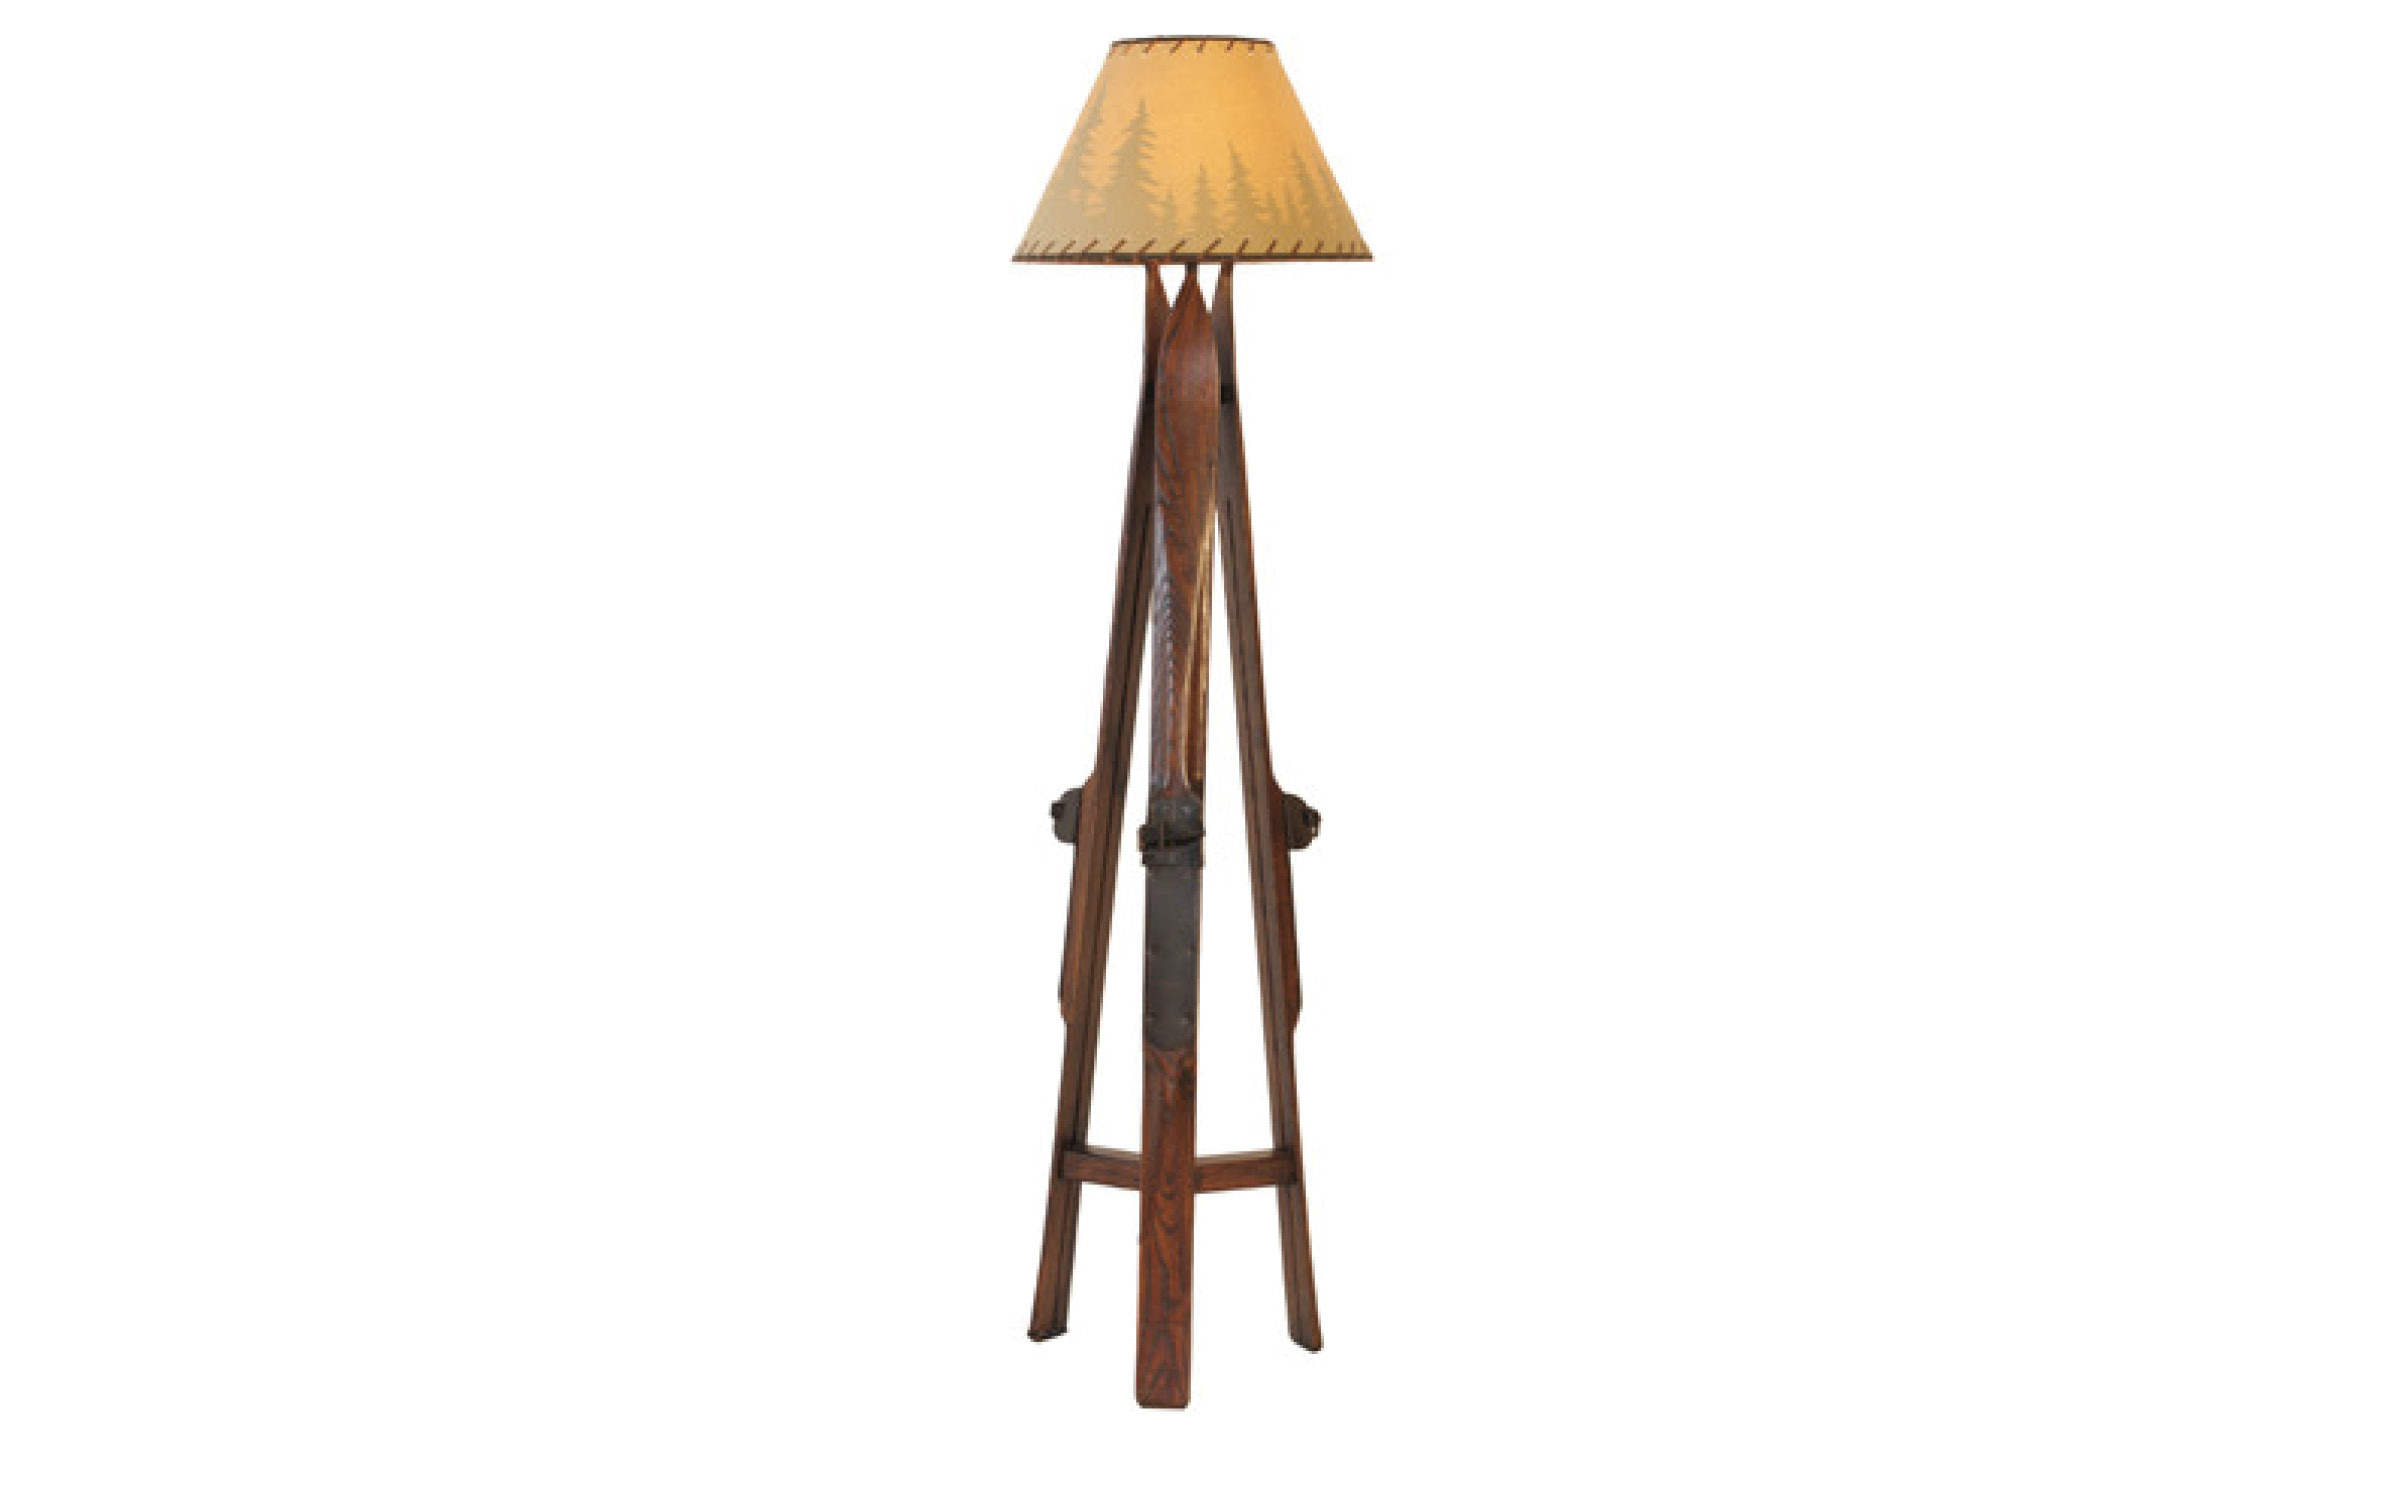 Mountain Rustic Ski Floor Lamp  | iFurnish, Frisco, CO